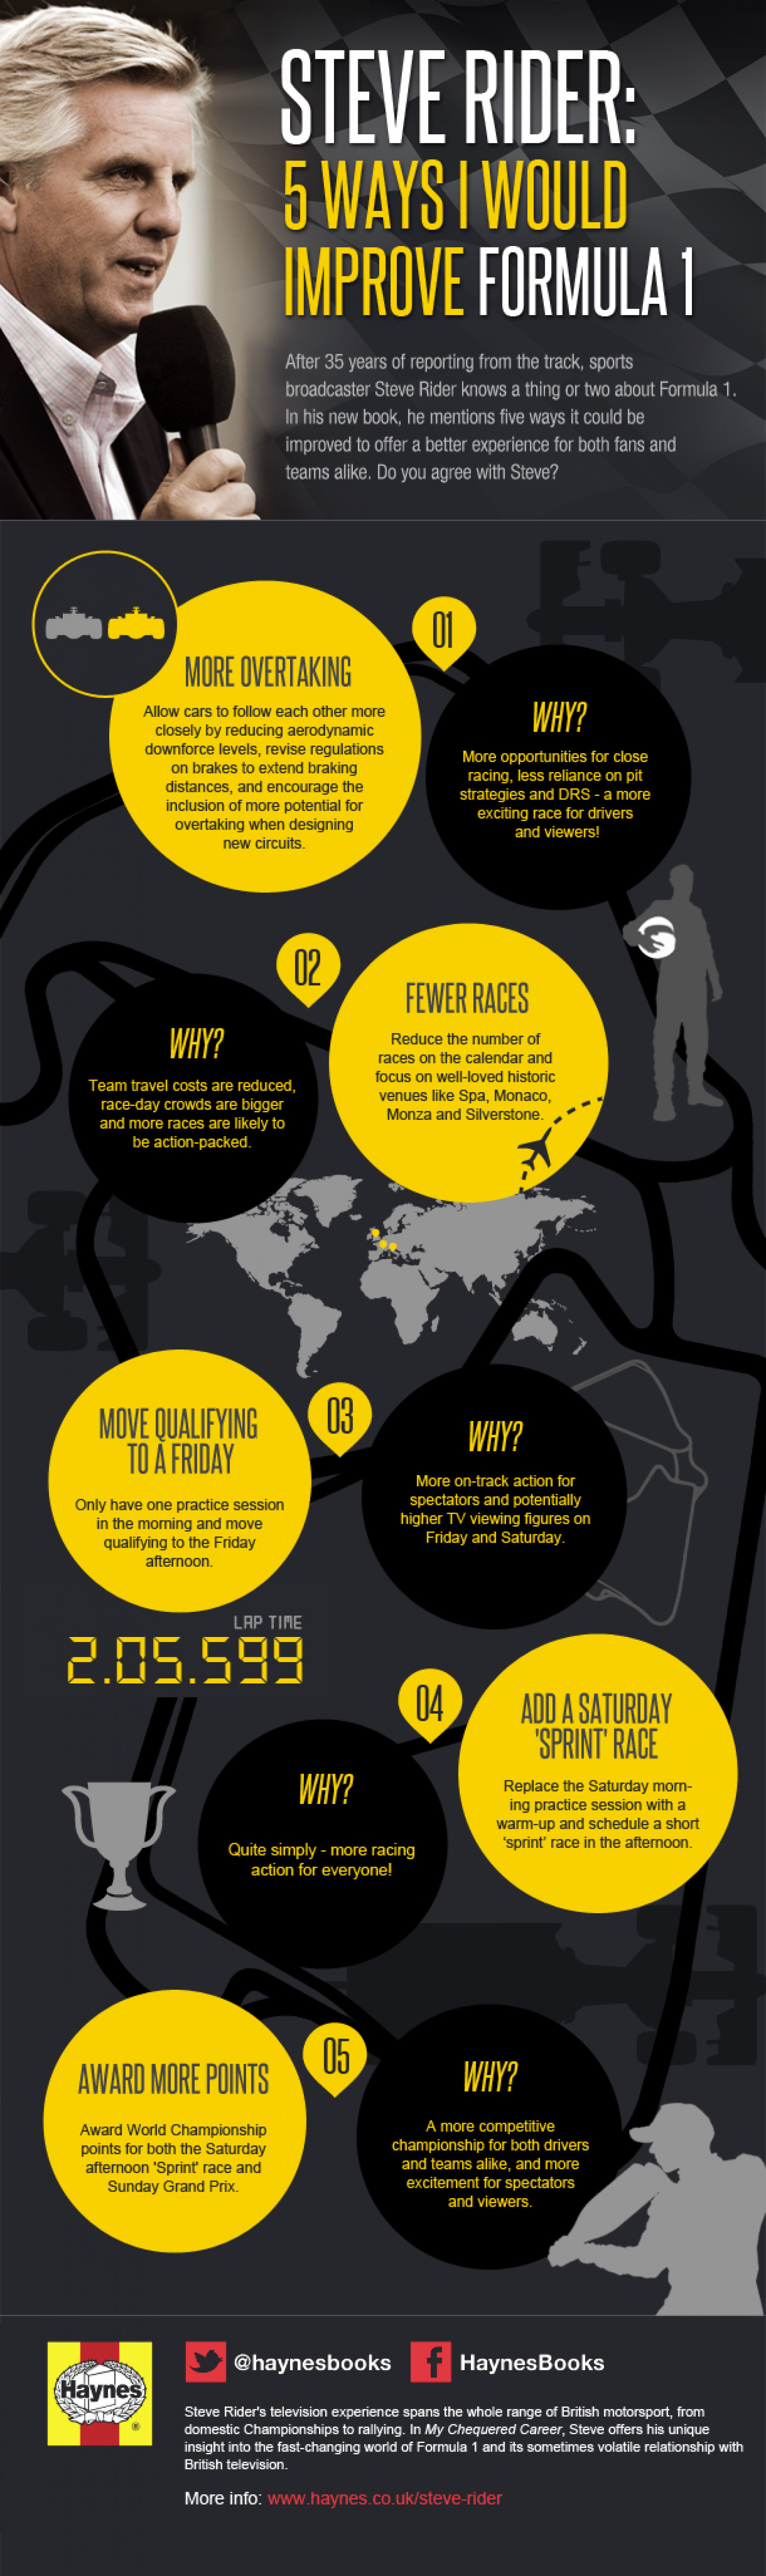 Steve Rider - 5 Ways I Would Improve Formula 1 Infographic